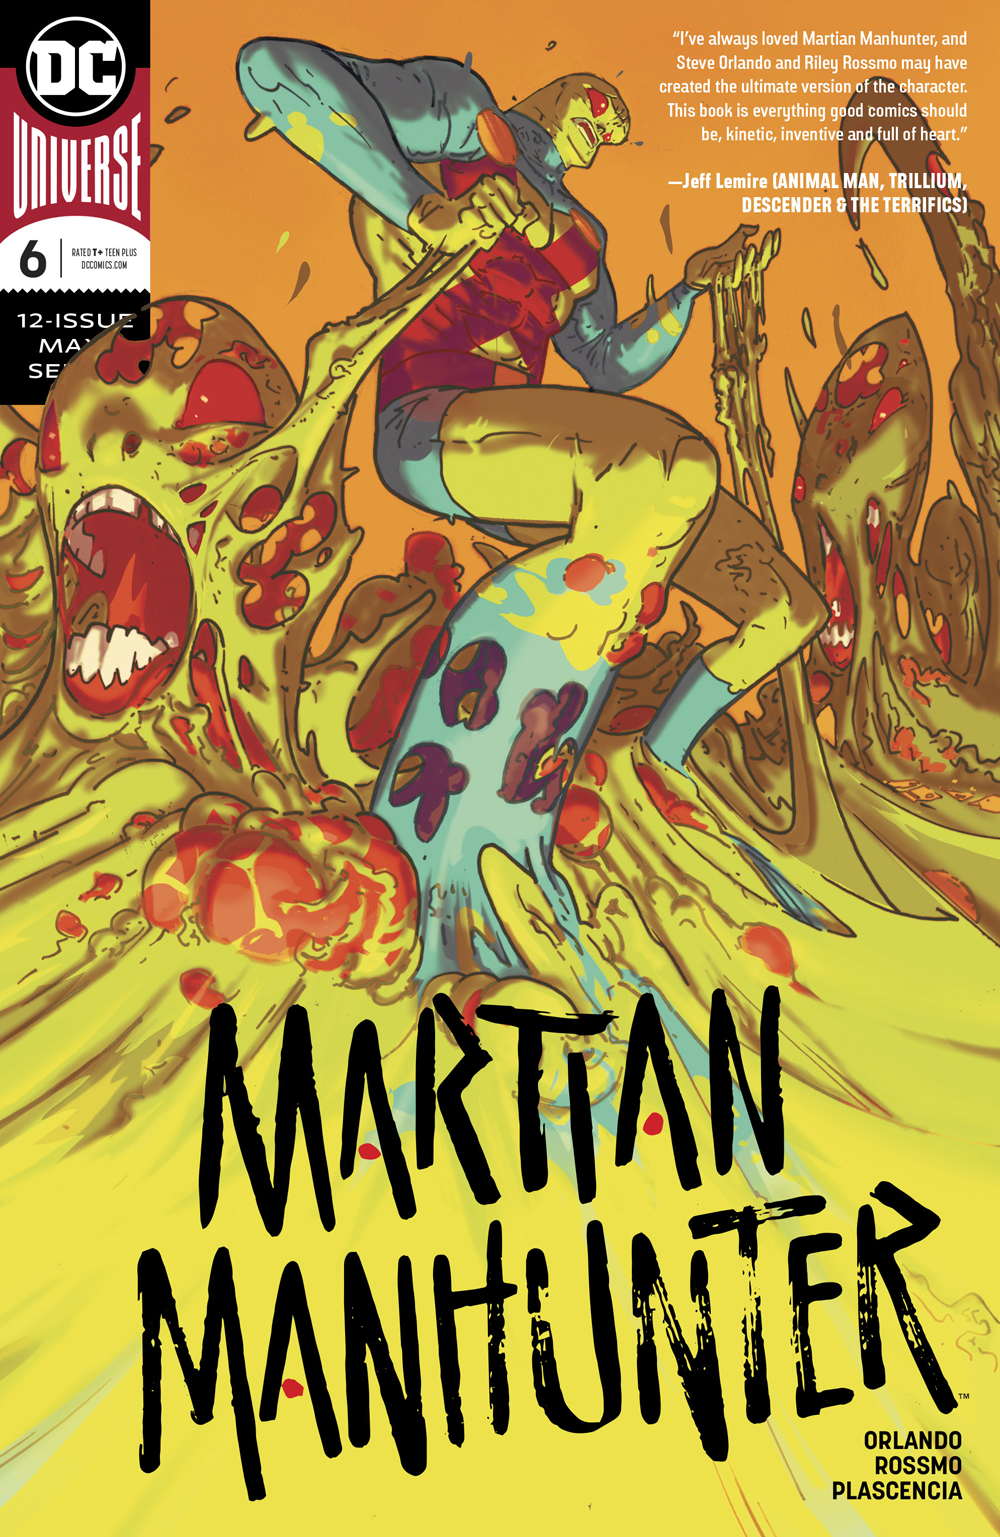 MARTIAN MANHUNTER #6 (OF 12)